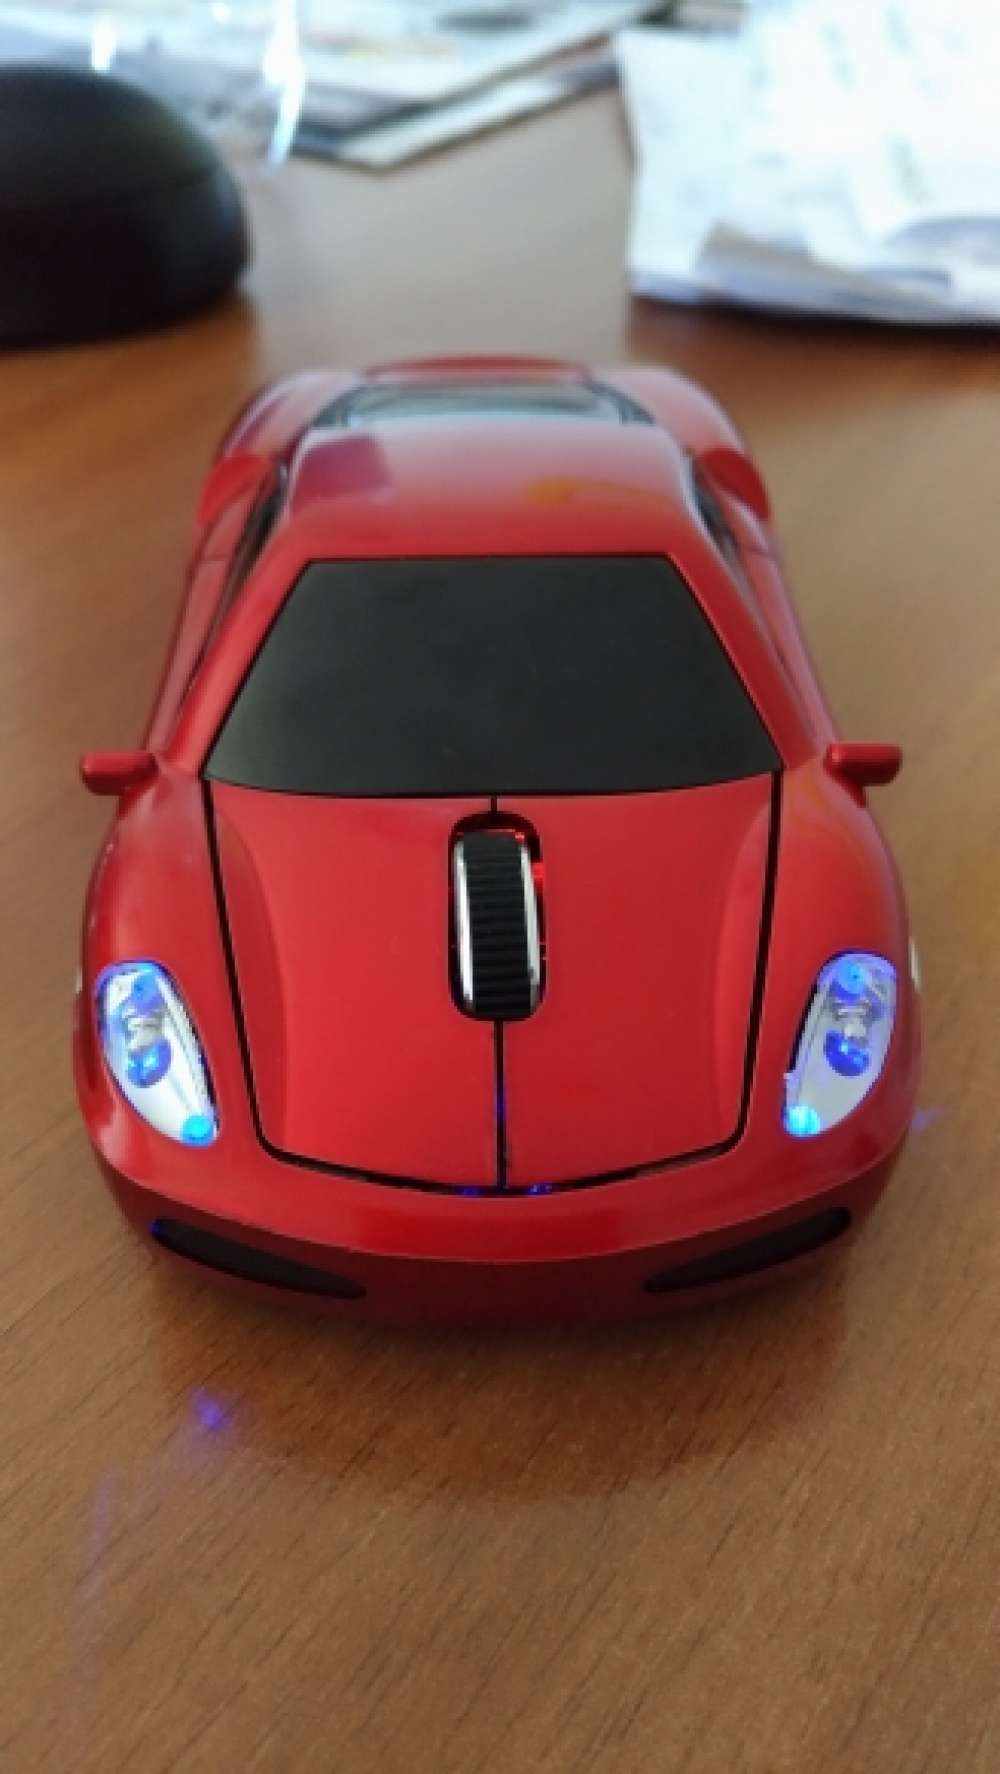 Wireless Car Mouse Smileyhomey Car Mouse Gaming Mouse